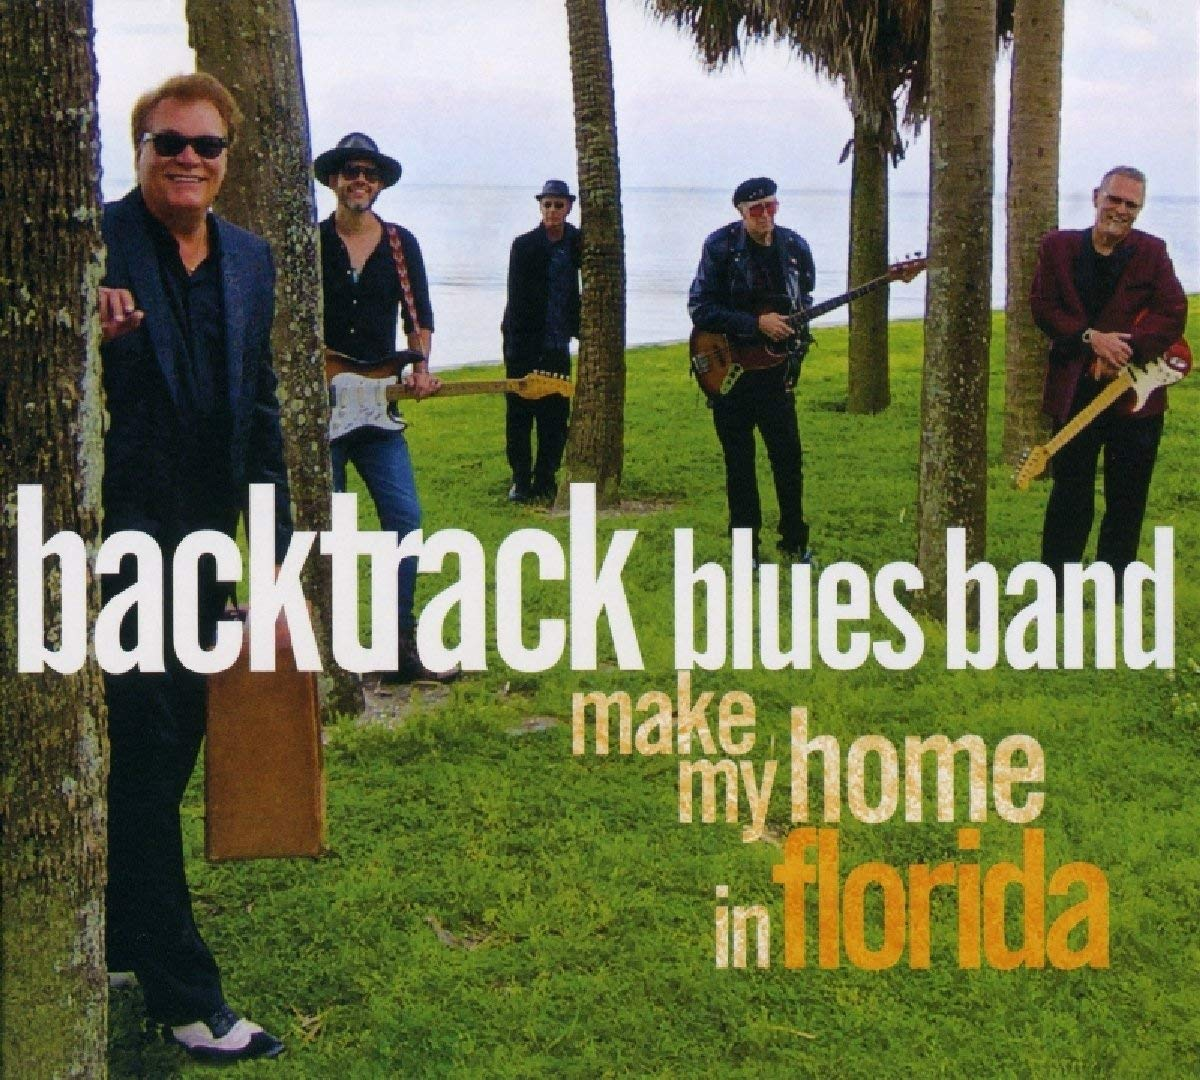 backtrack-blues-band-make-my-home-in-florida-dvd